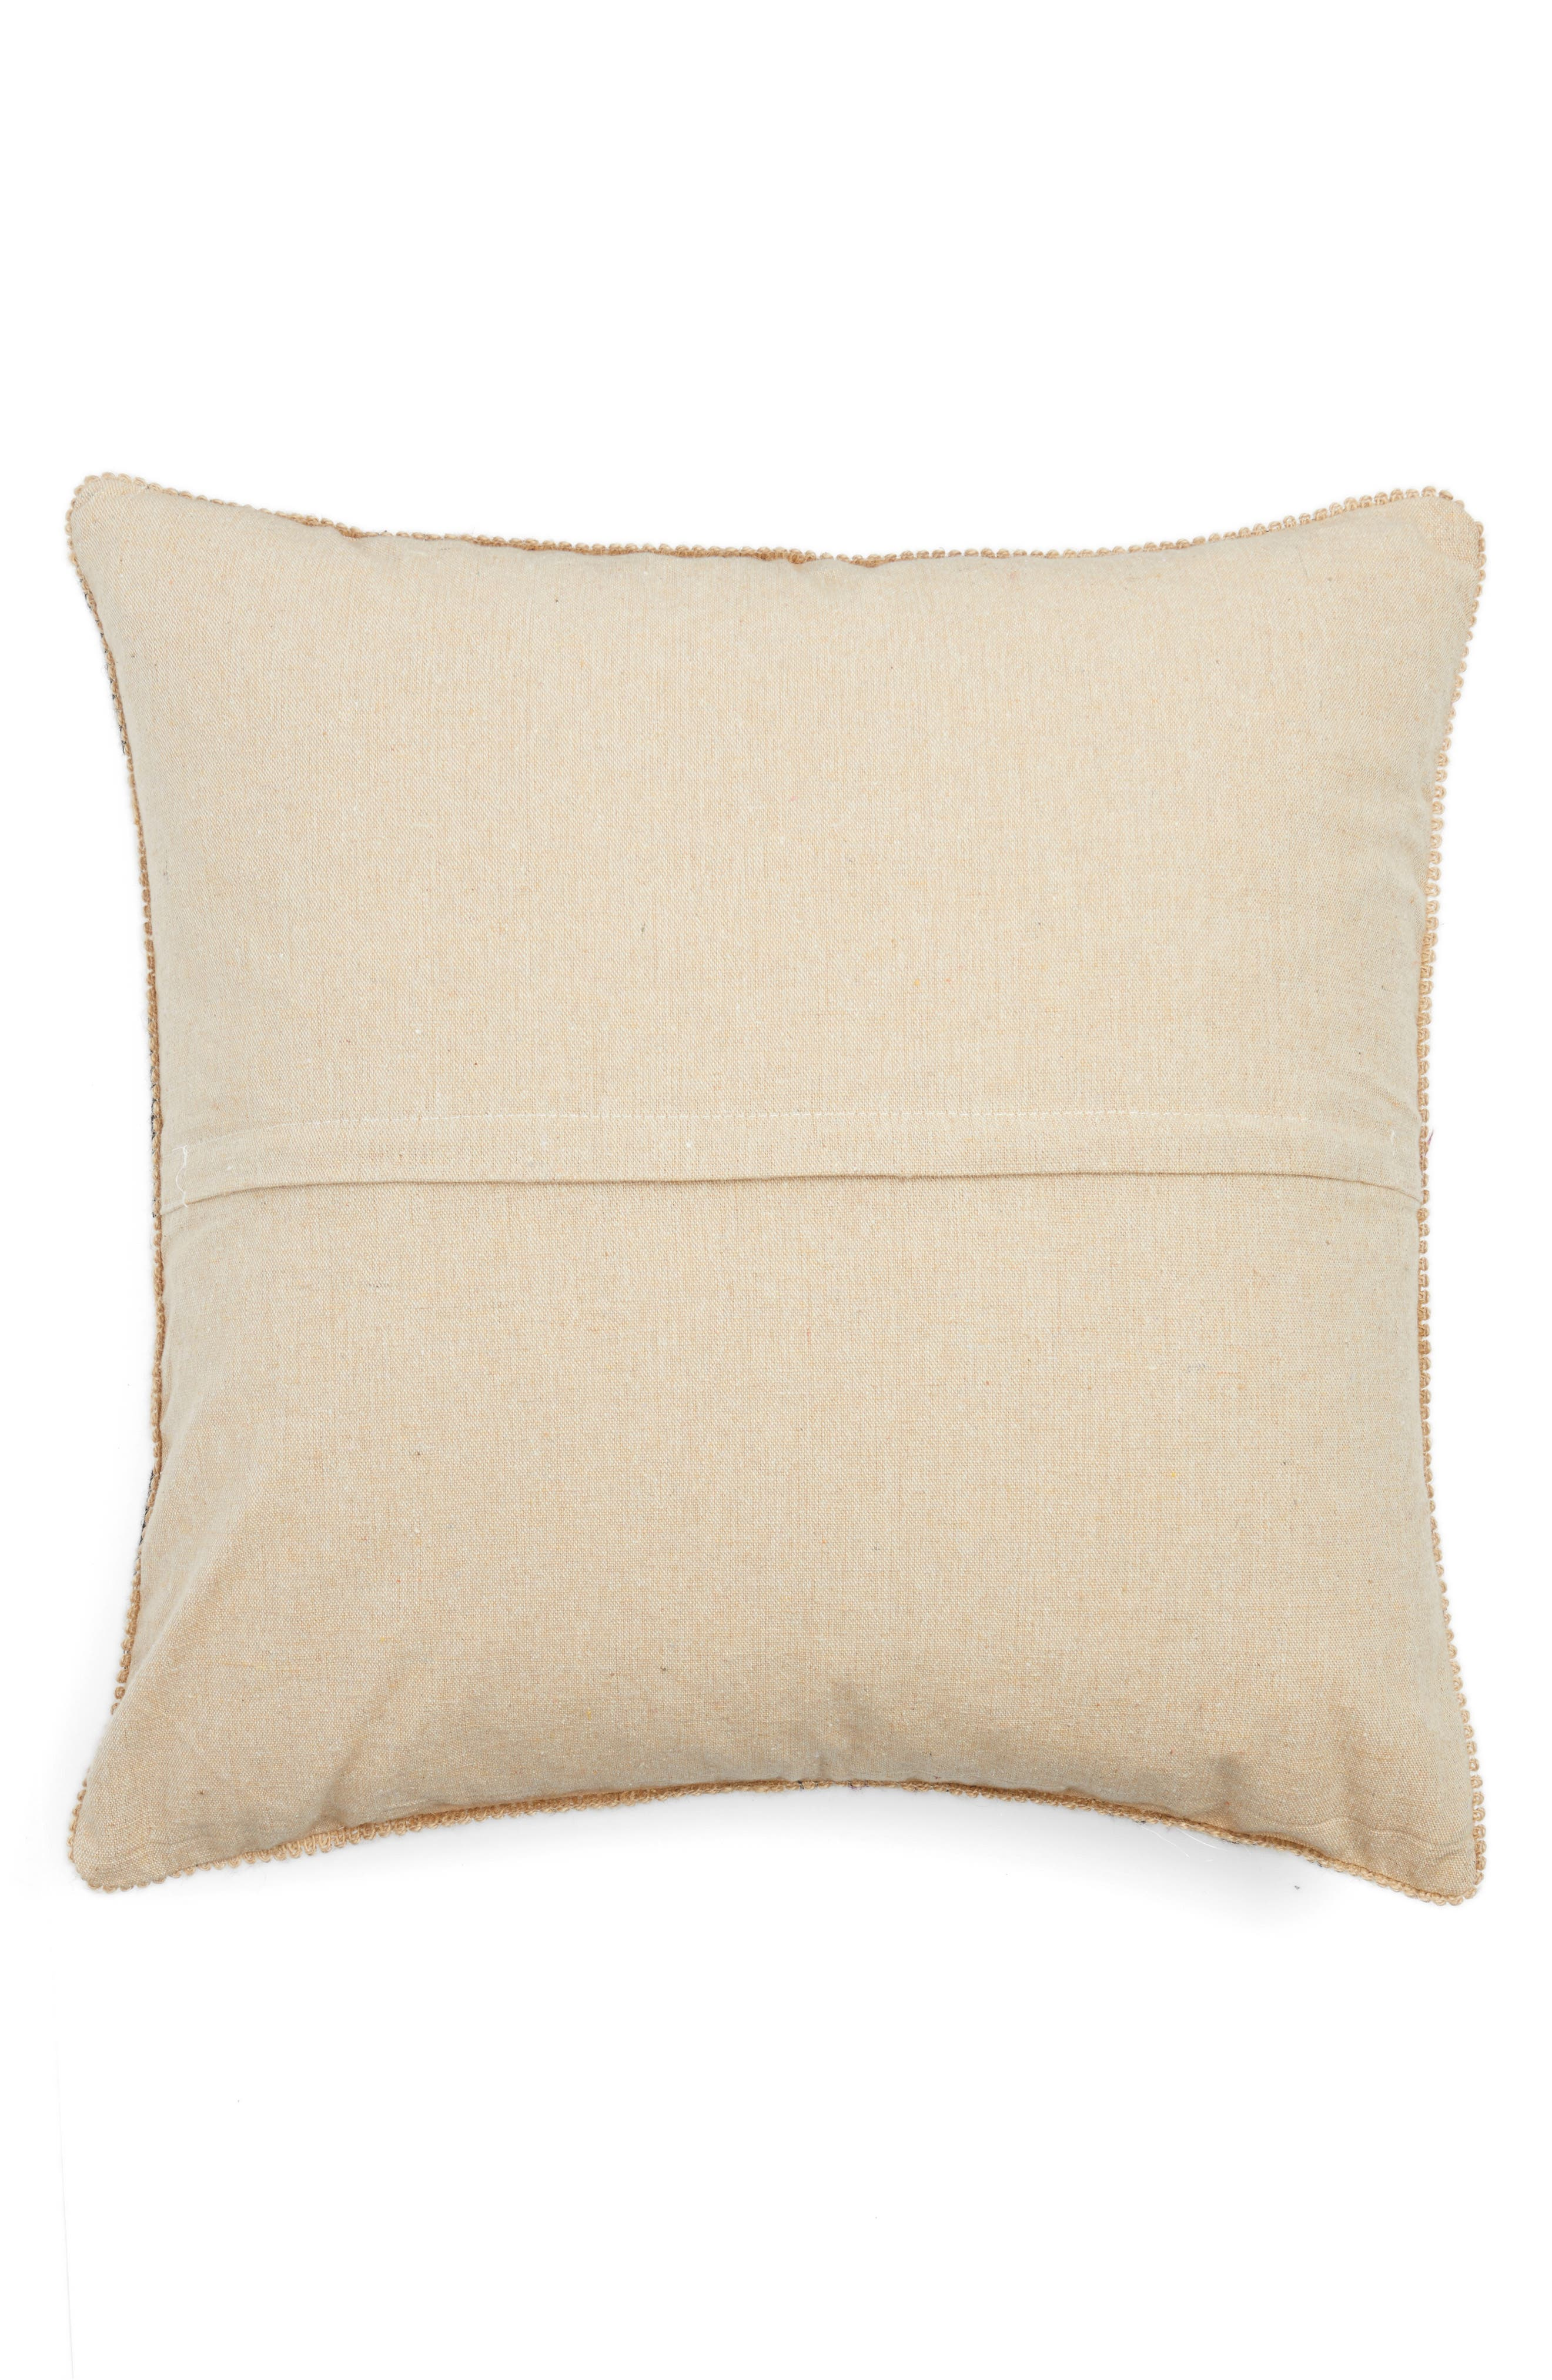 Zander Embroidered Pillow,                             Alternate thumbnail 2, color,                             Multi